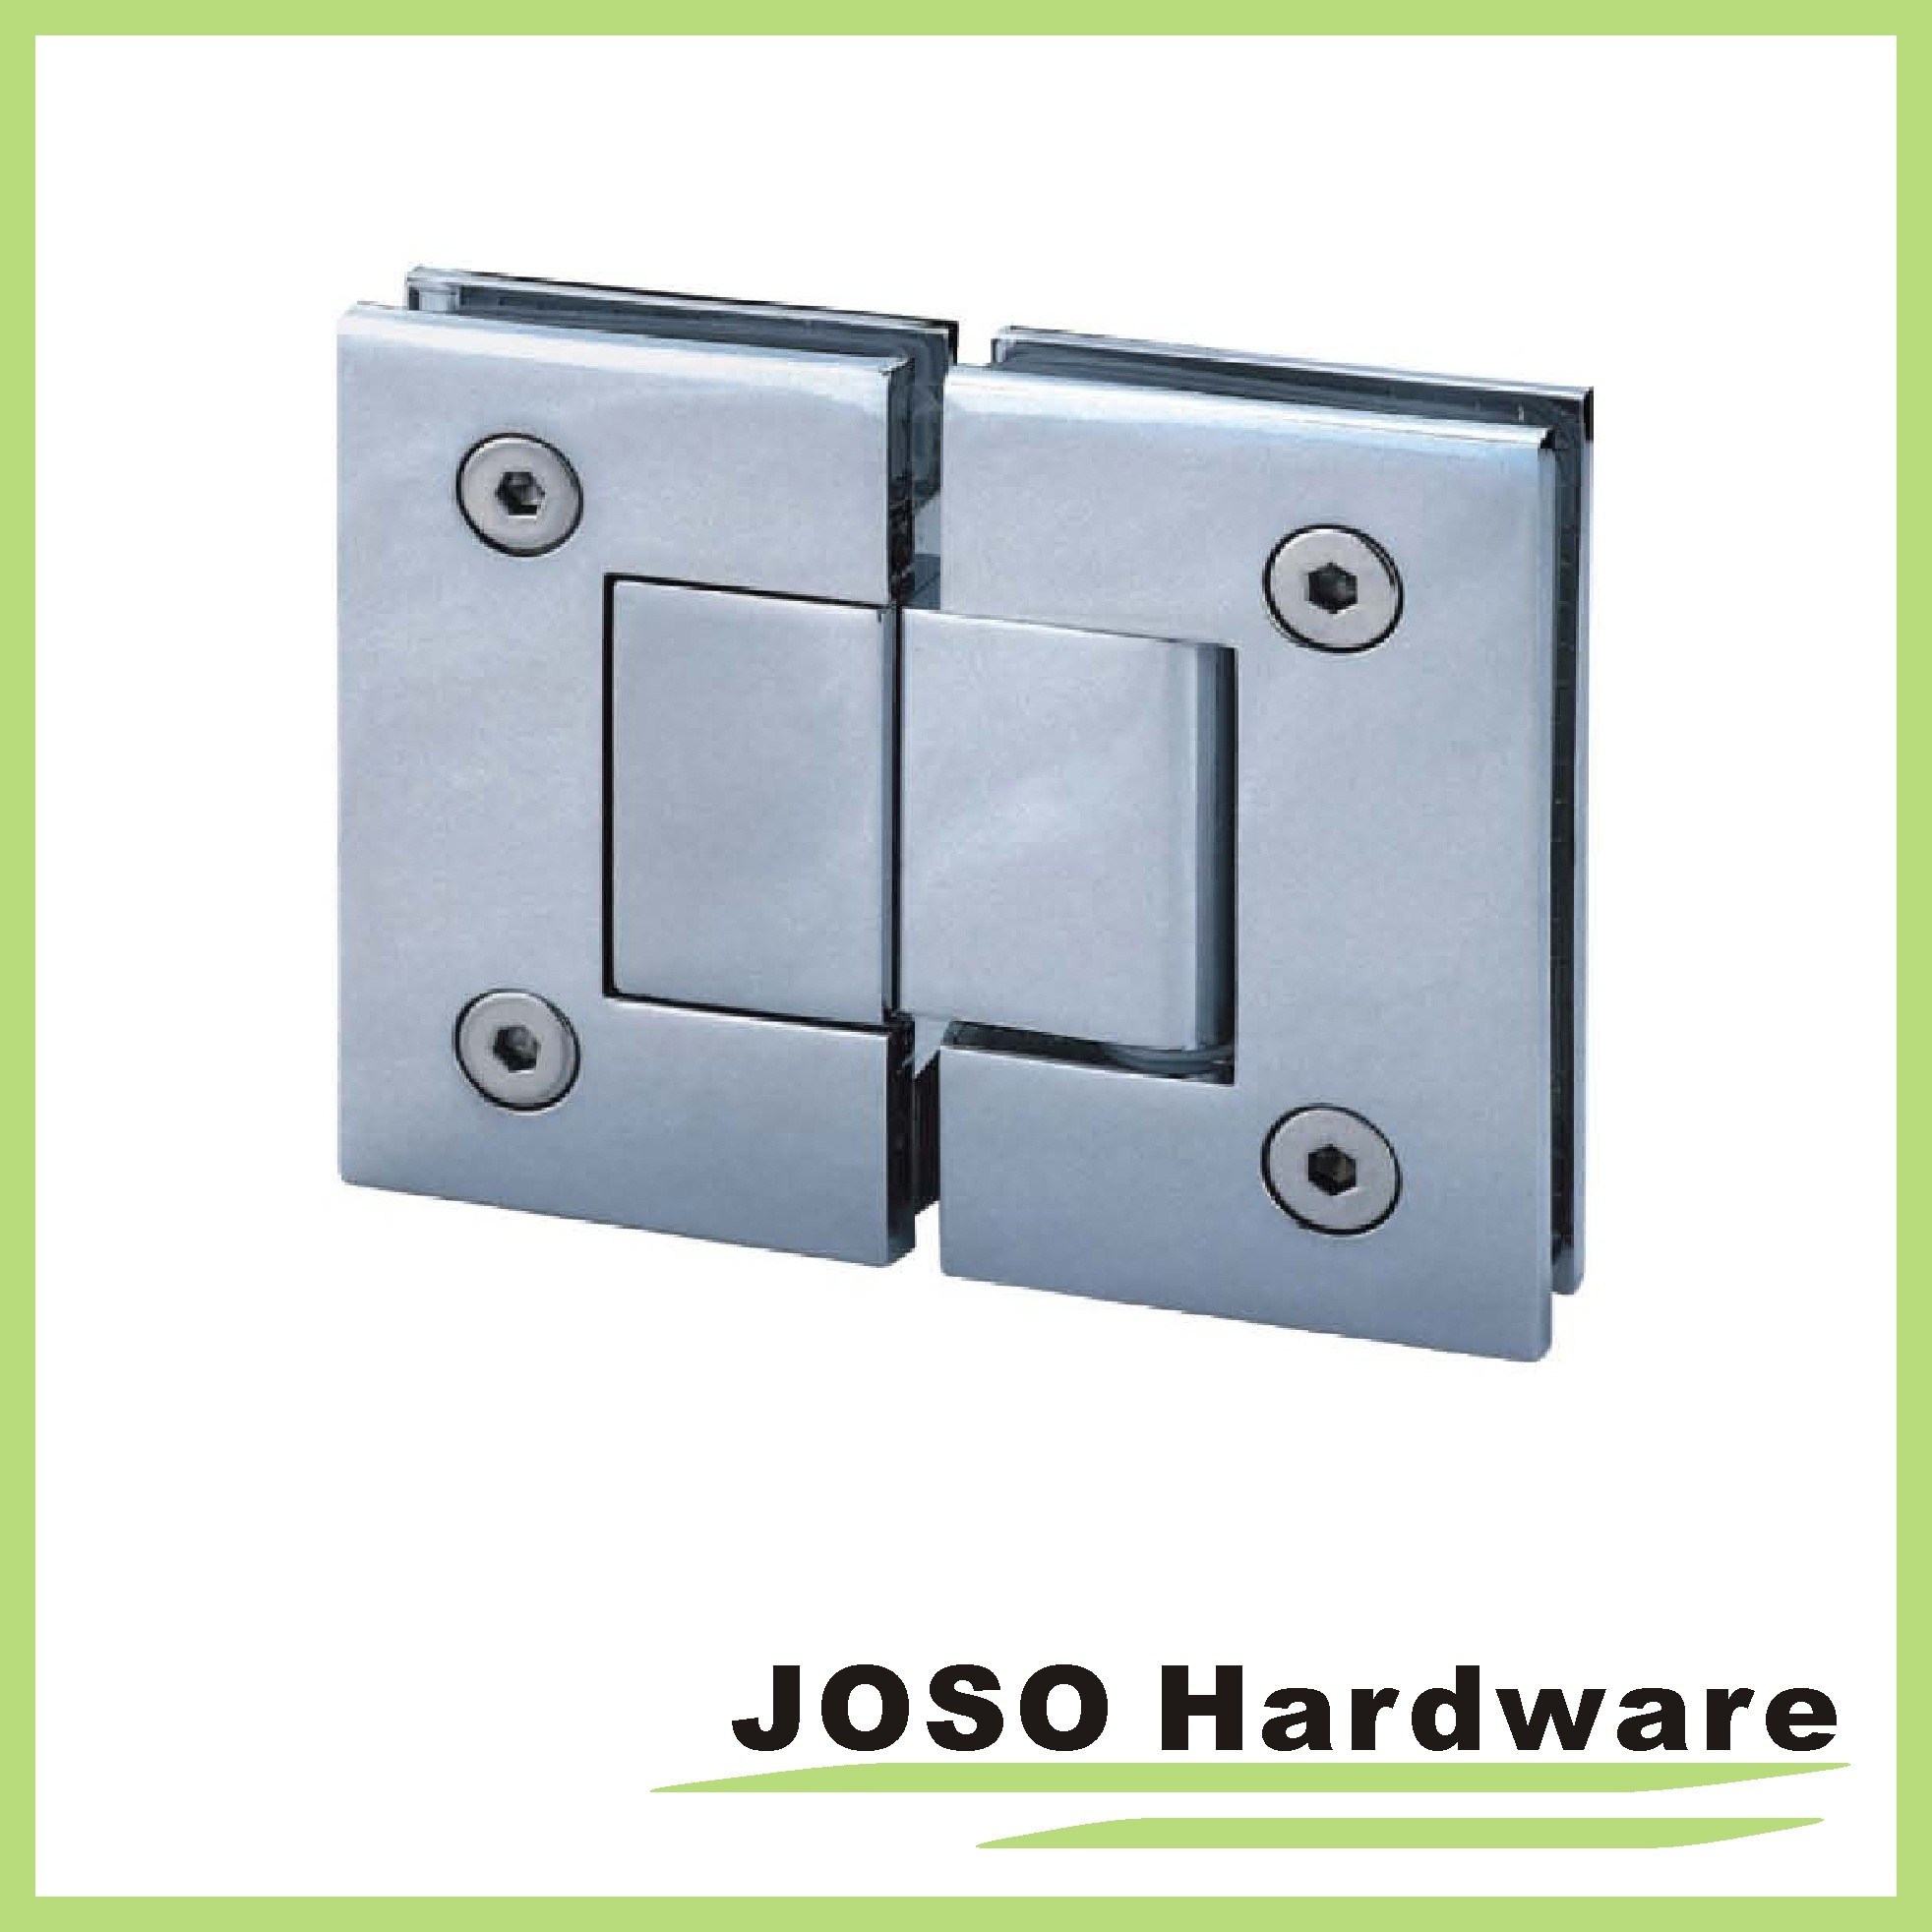 135 Degree Glass to Glass Brass Mount Shower Hinges Bh2003